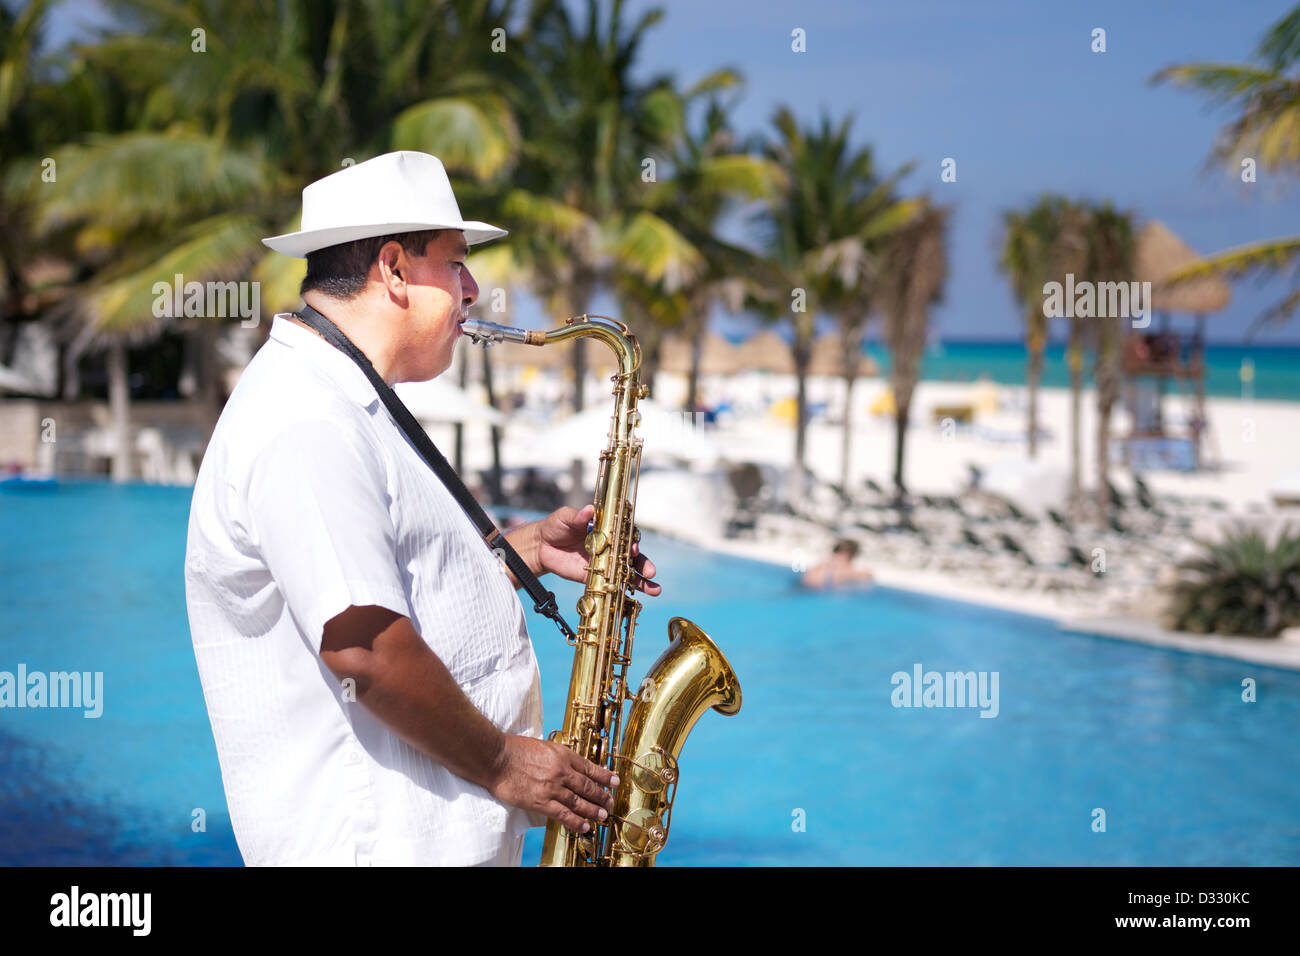 Man playing Saxophone at beach - Stock Image